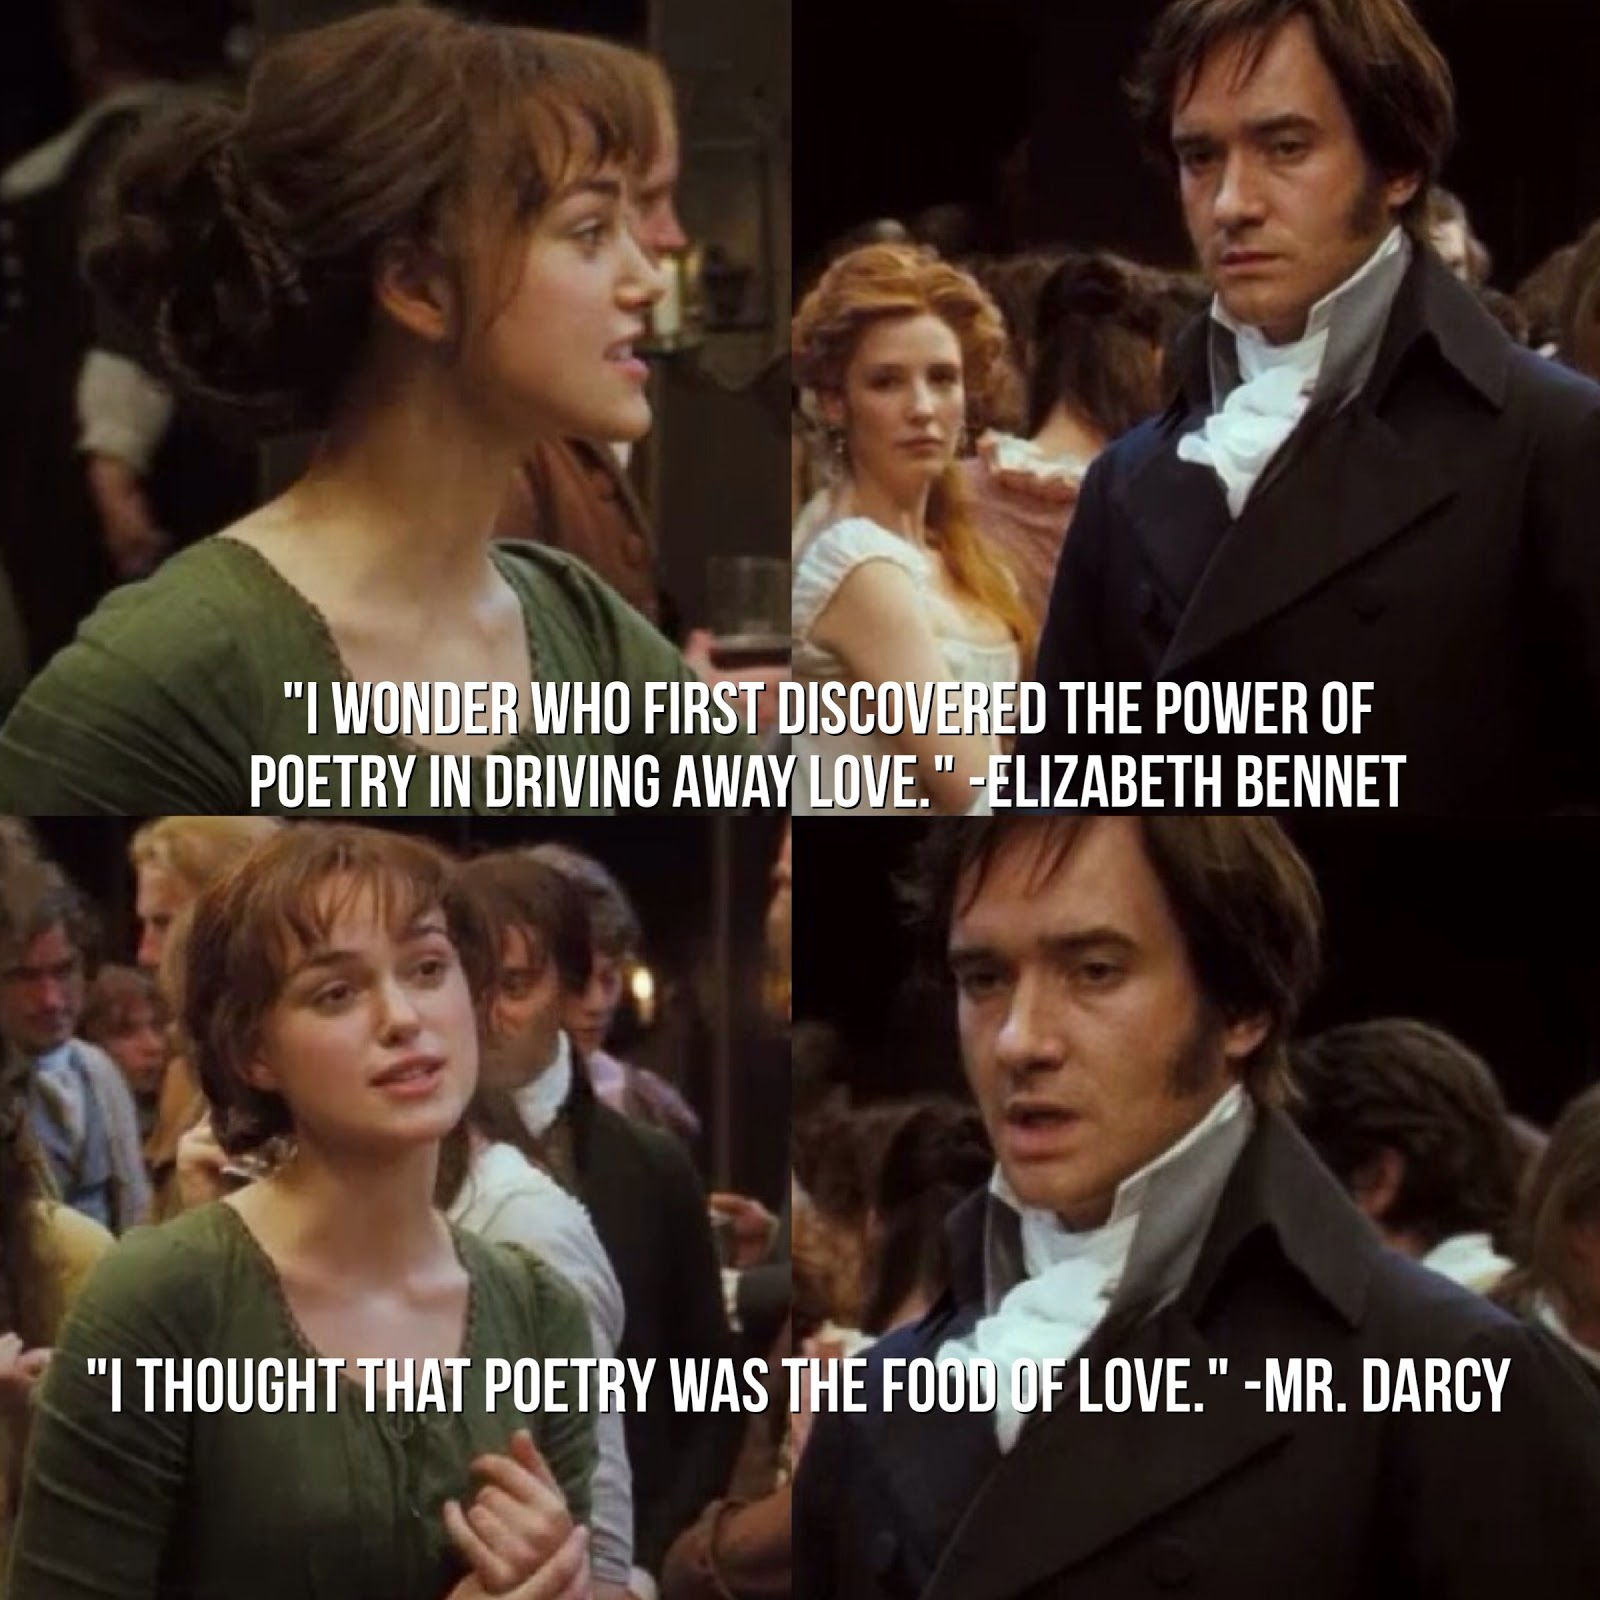 I Wonder Who First Discovered The Power Of Poetry In Driving Away Love?